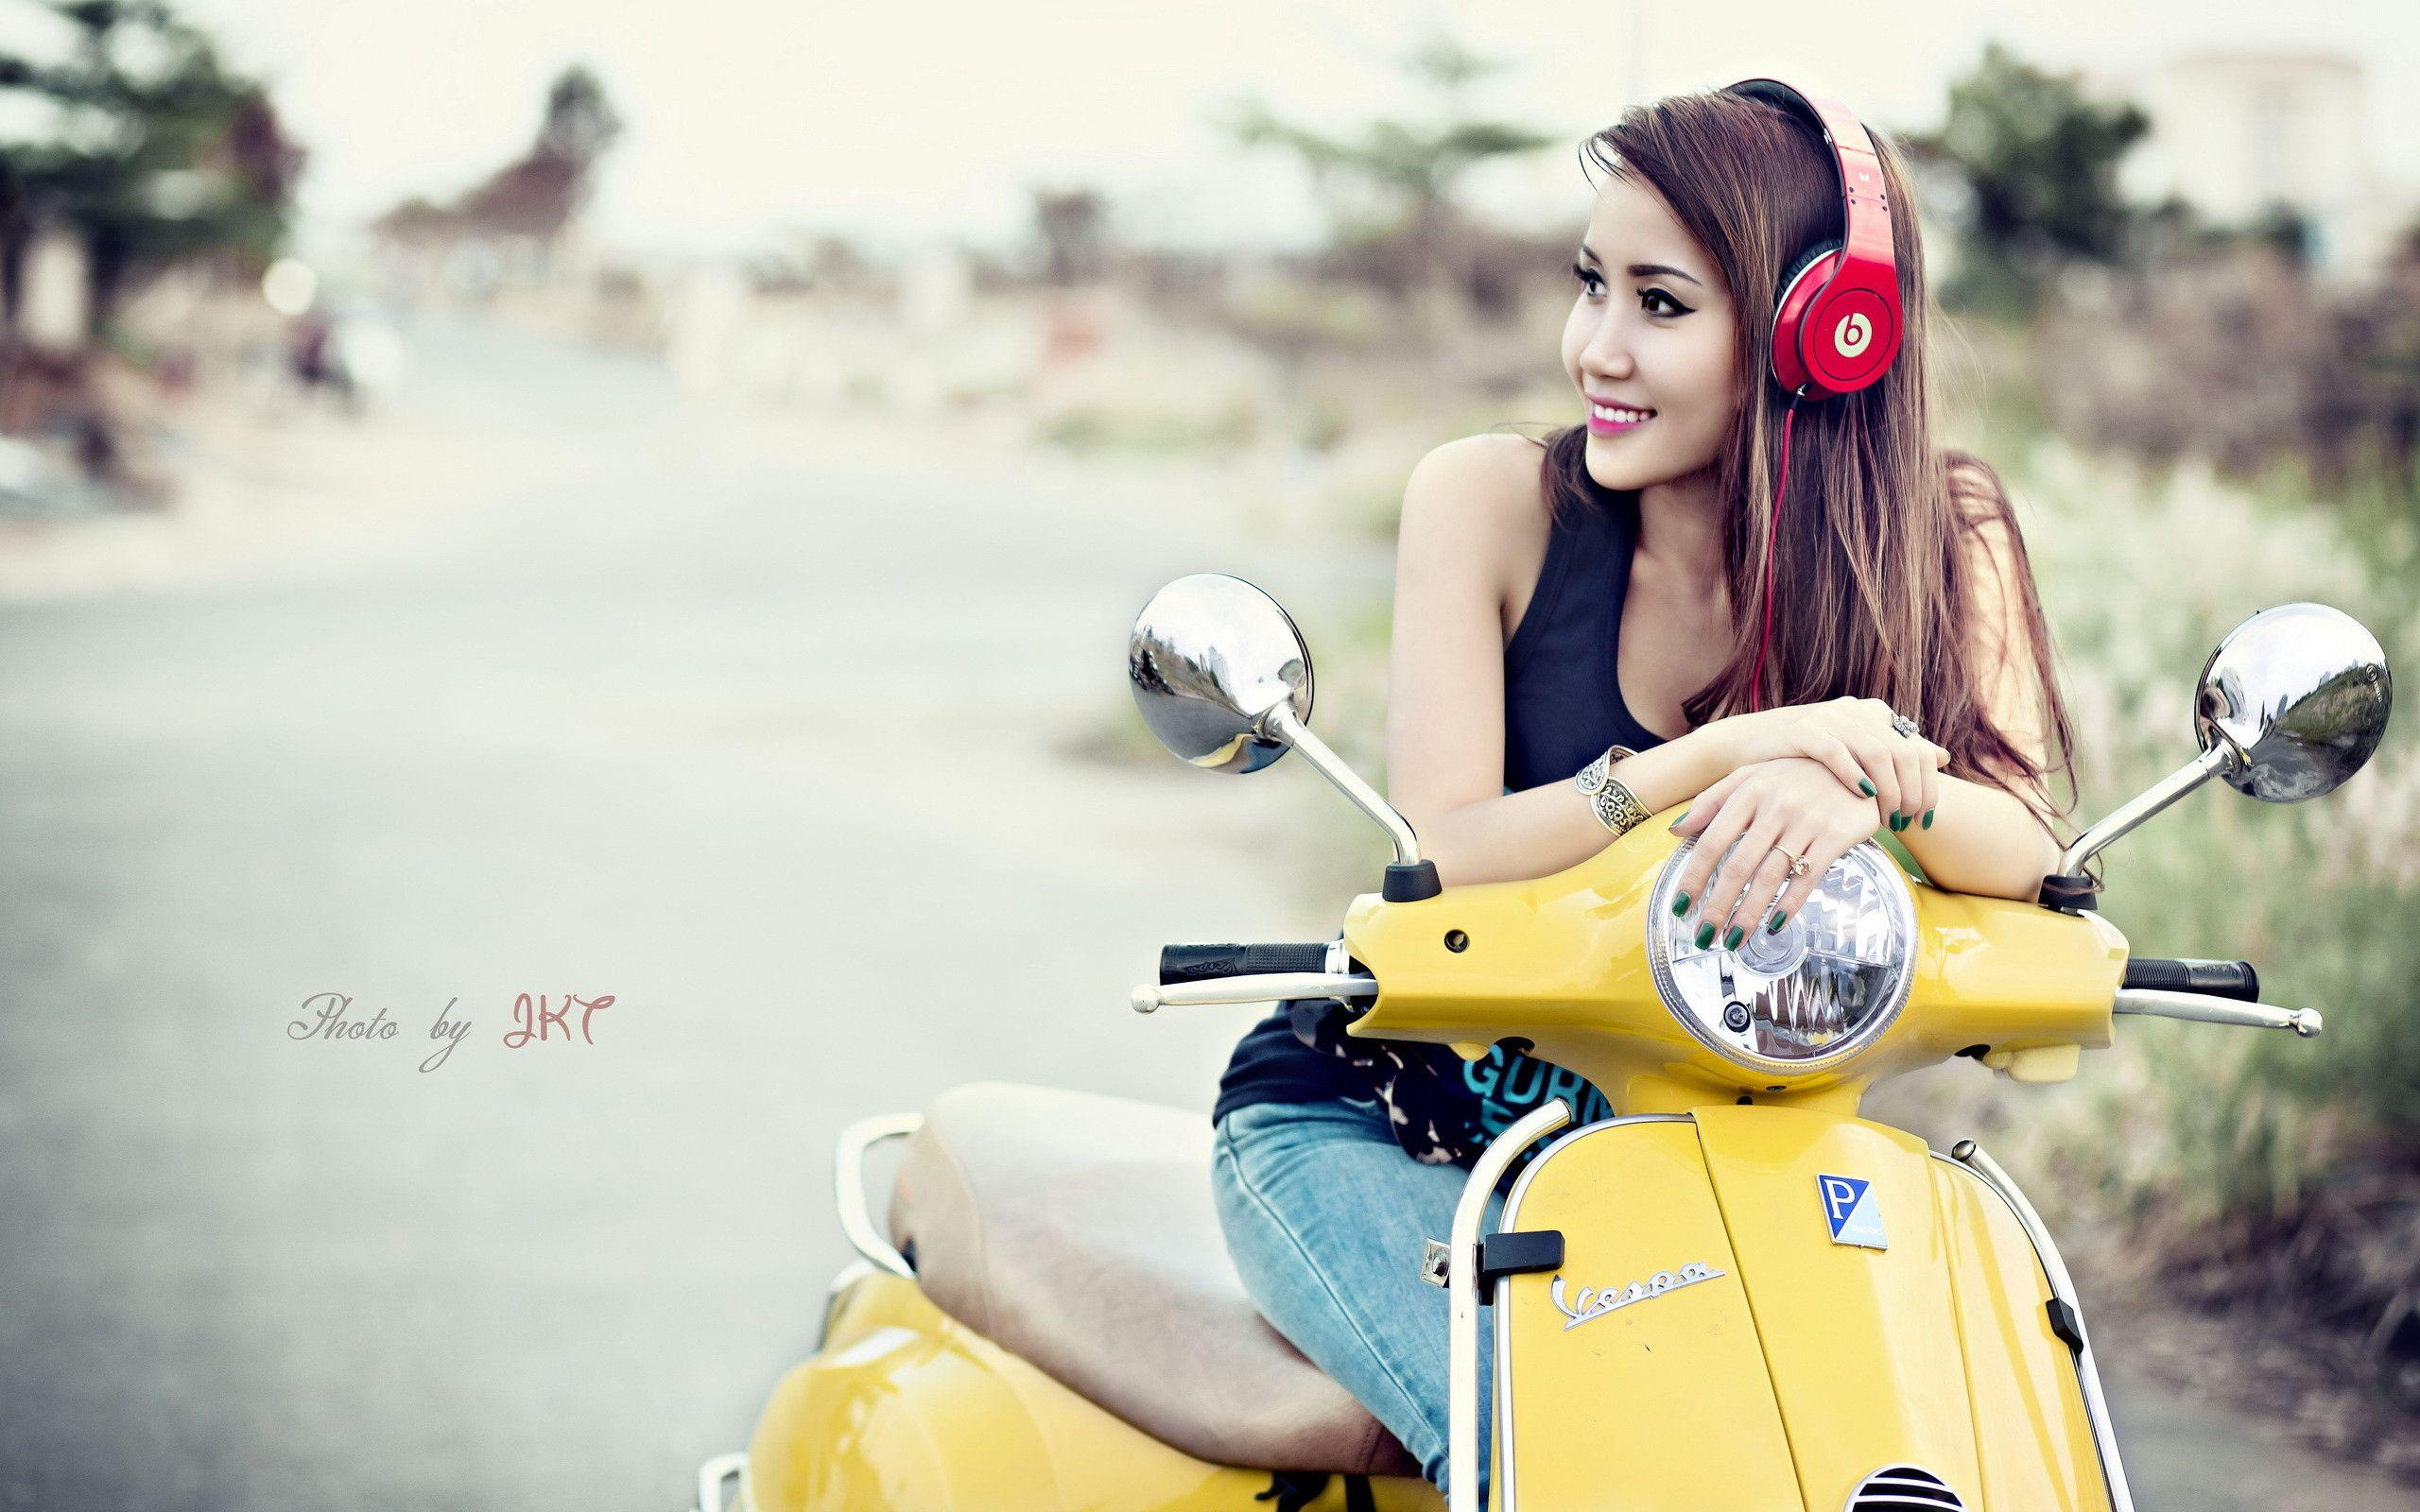 Anime Headphone Girl Wallpaper Vespa Wallpapers Wallpaper Cave